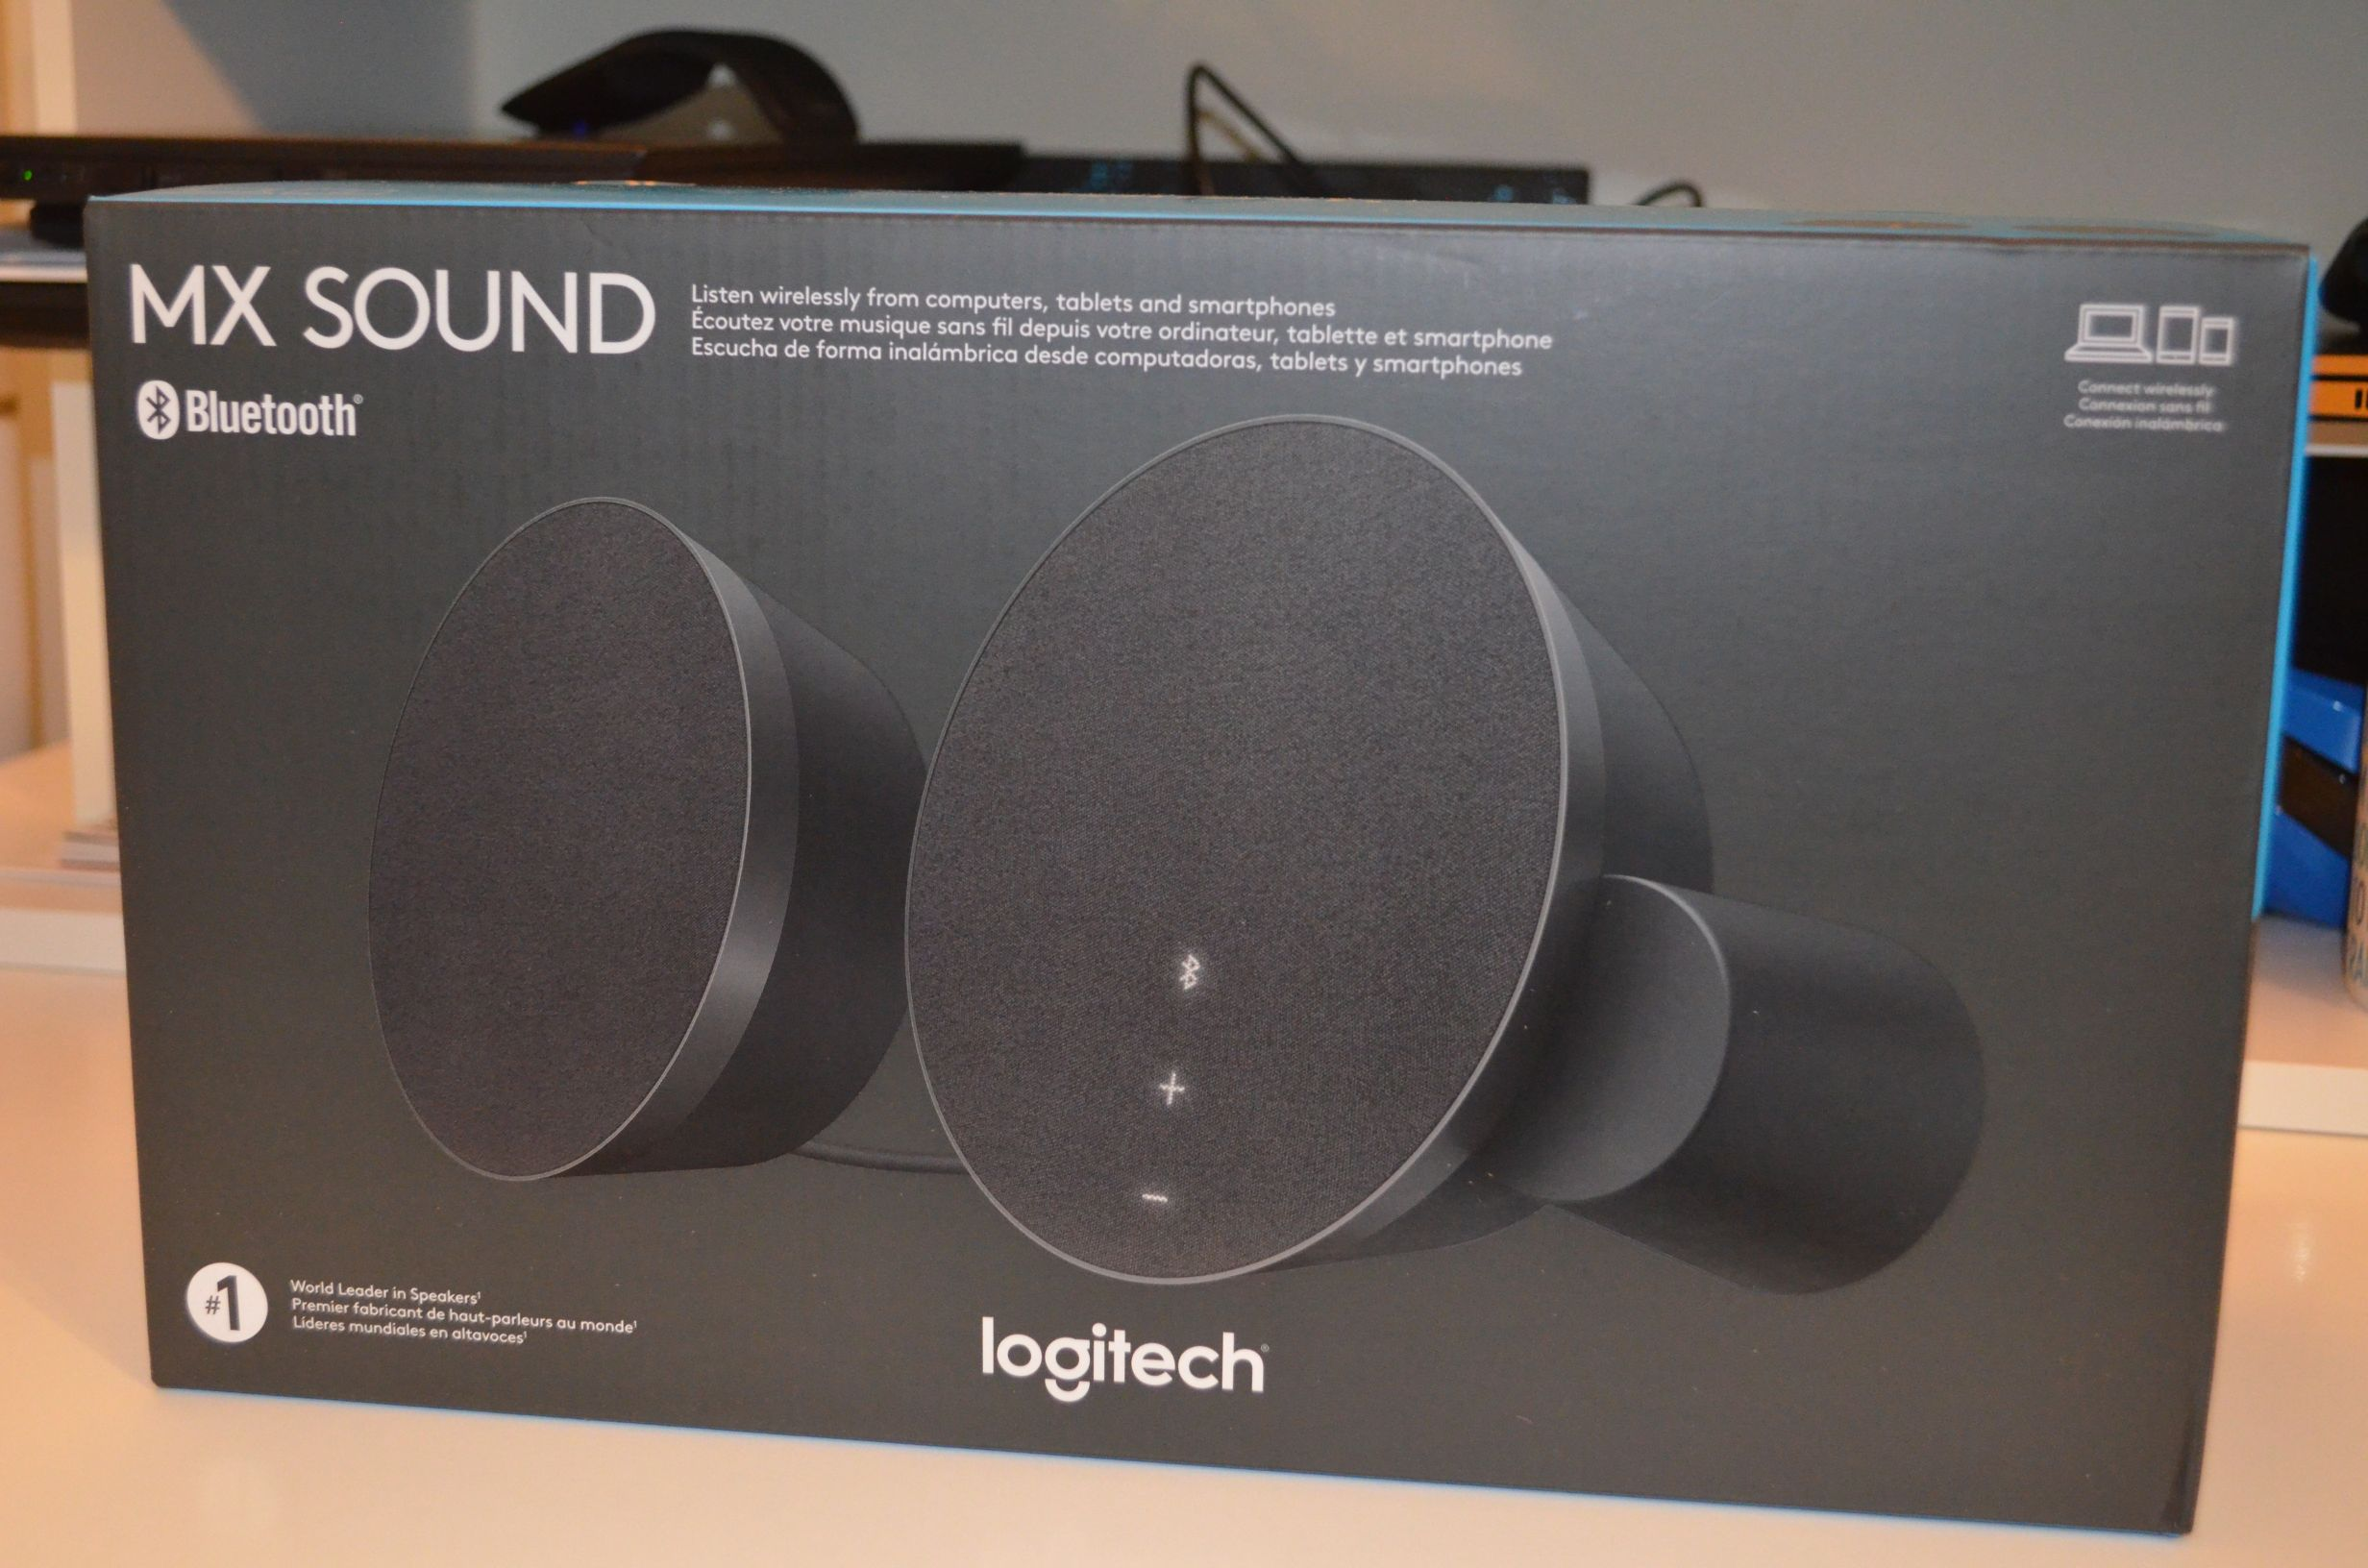 Hands On: Logitech MX Sound Universal Speakers